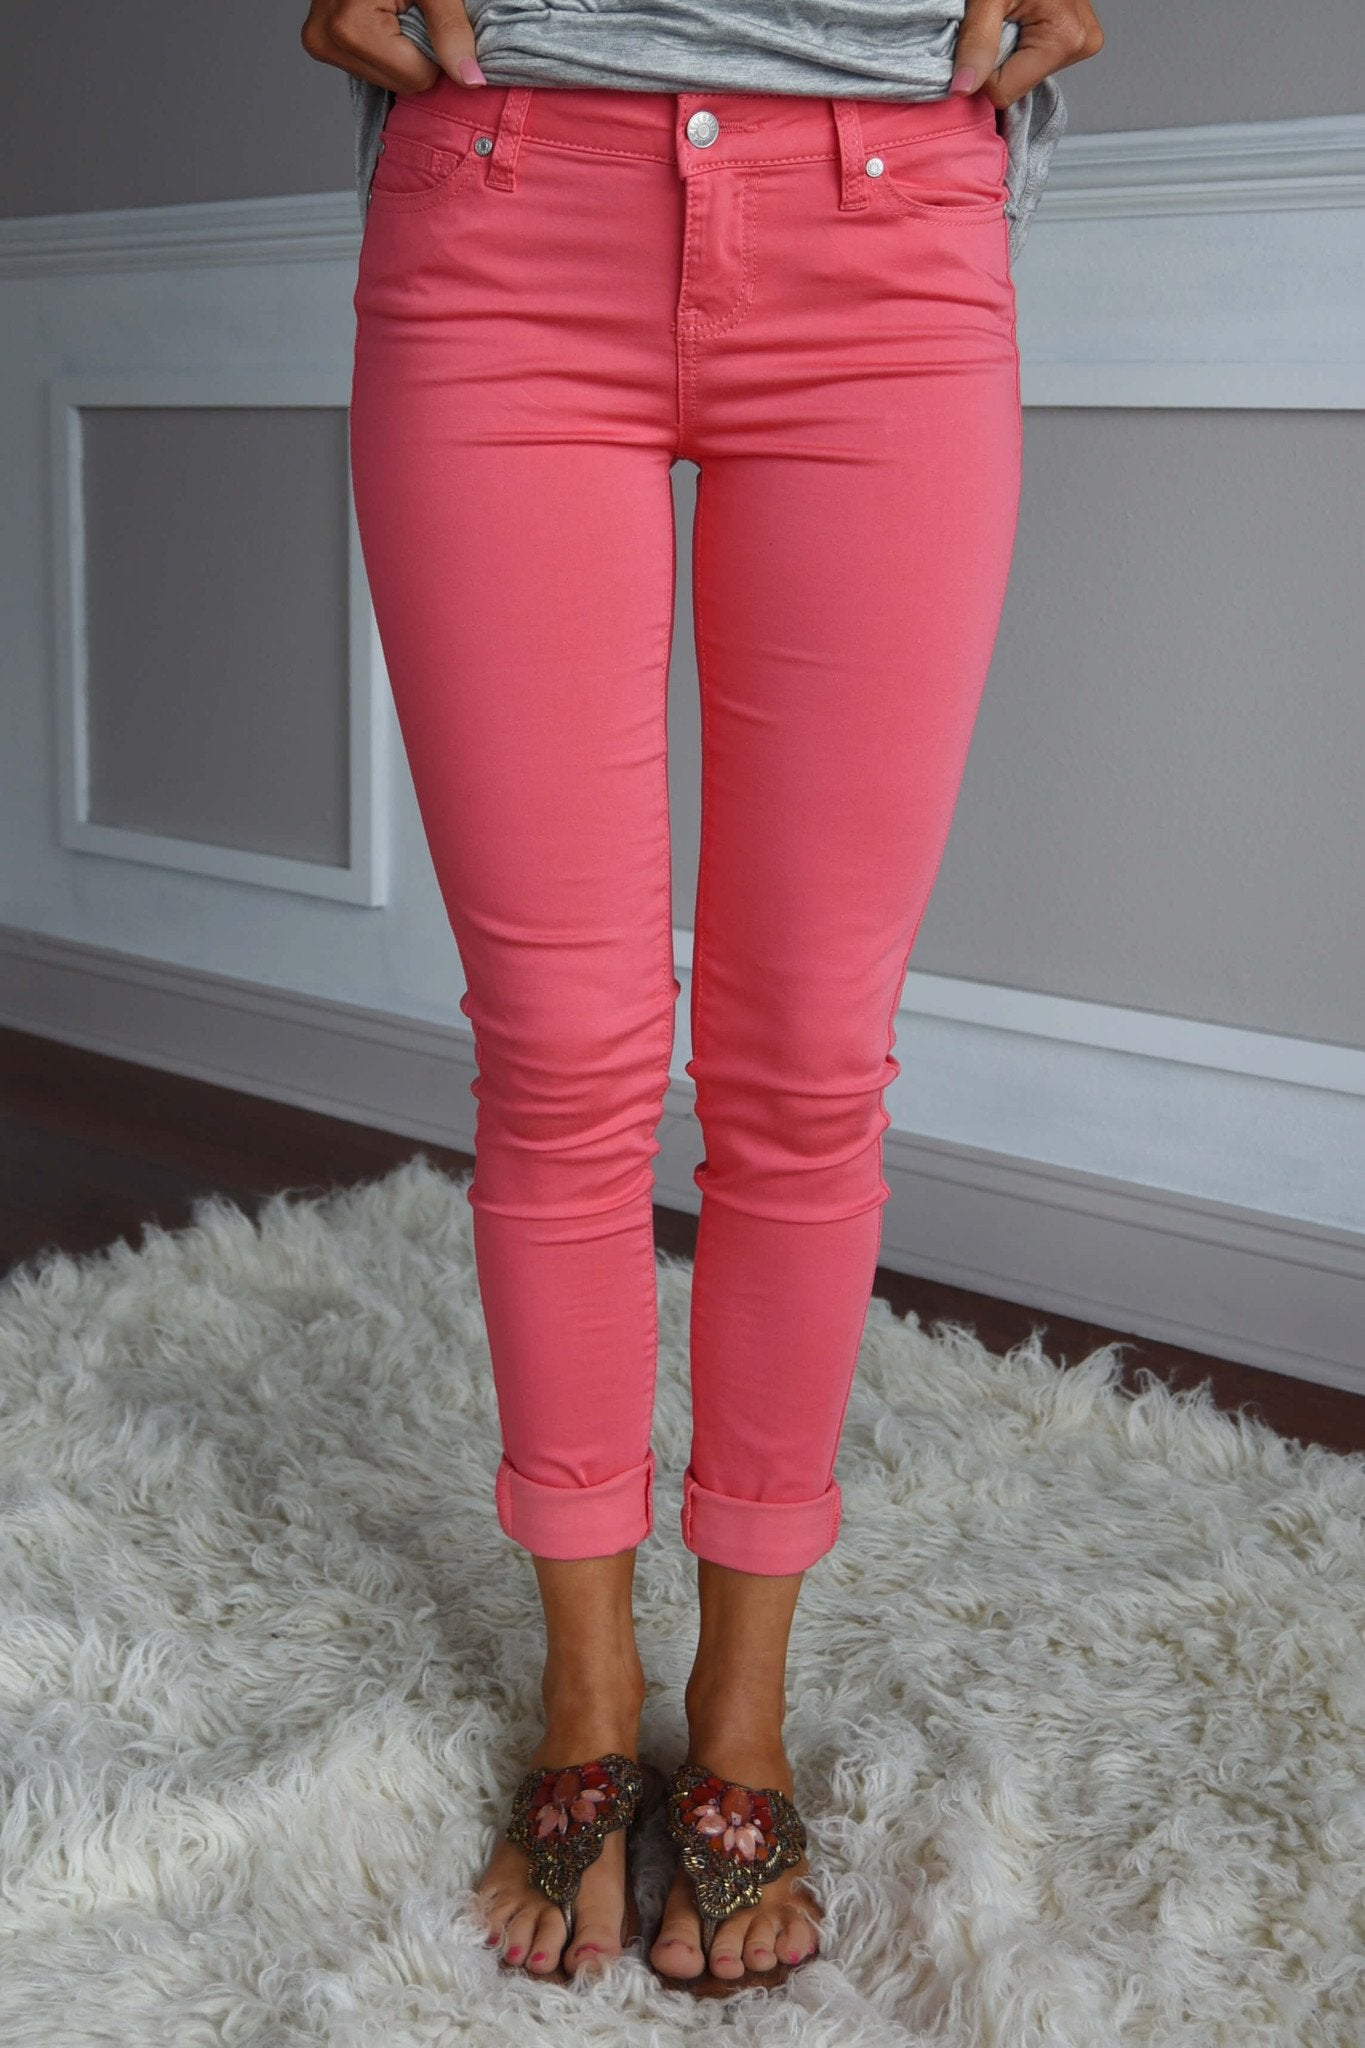 Calypso Coral Pants